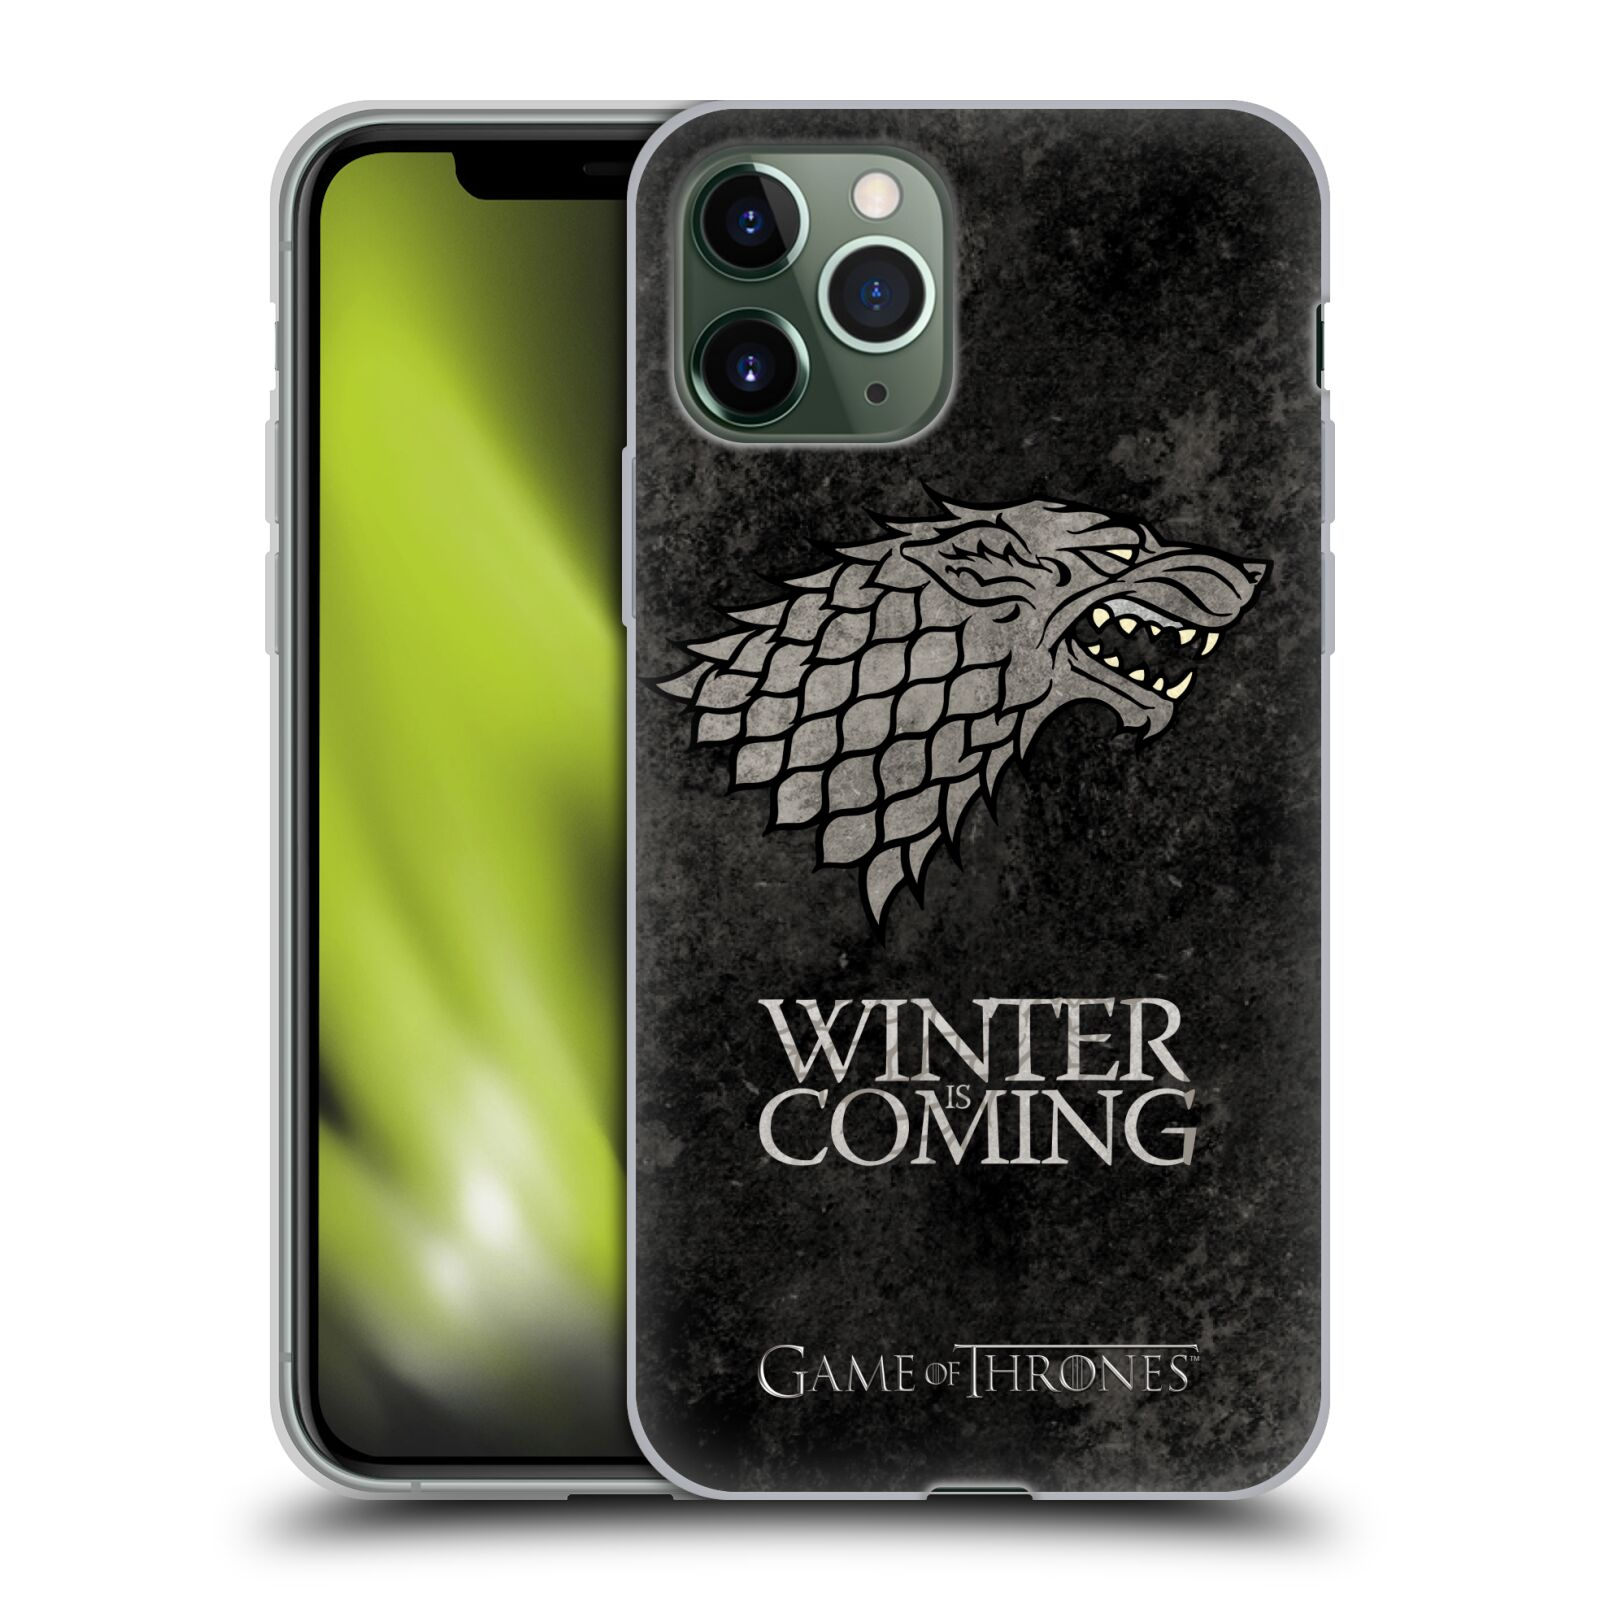 lagerfeld obaly iphone xr , Silikonové pouzdro na mobil Apple iPhone 11 Pro - Head Case - Hra o trůny - Stark - Winter is coming